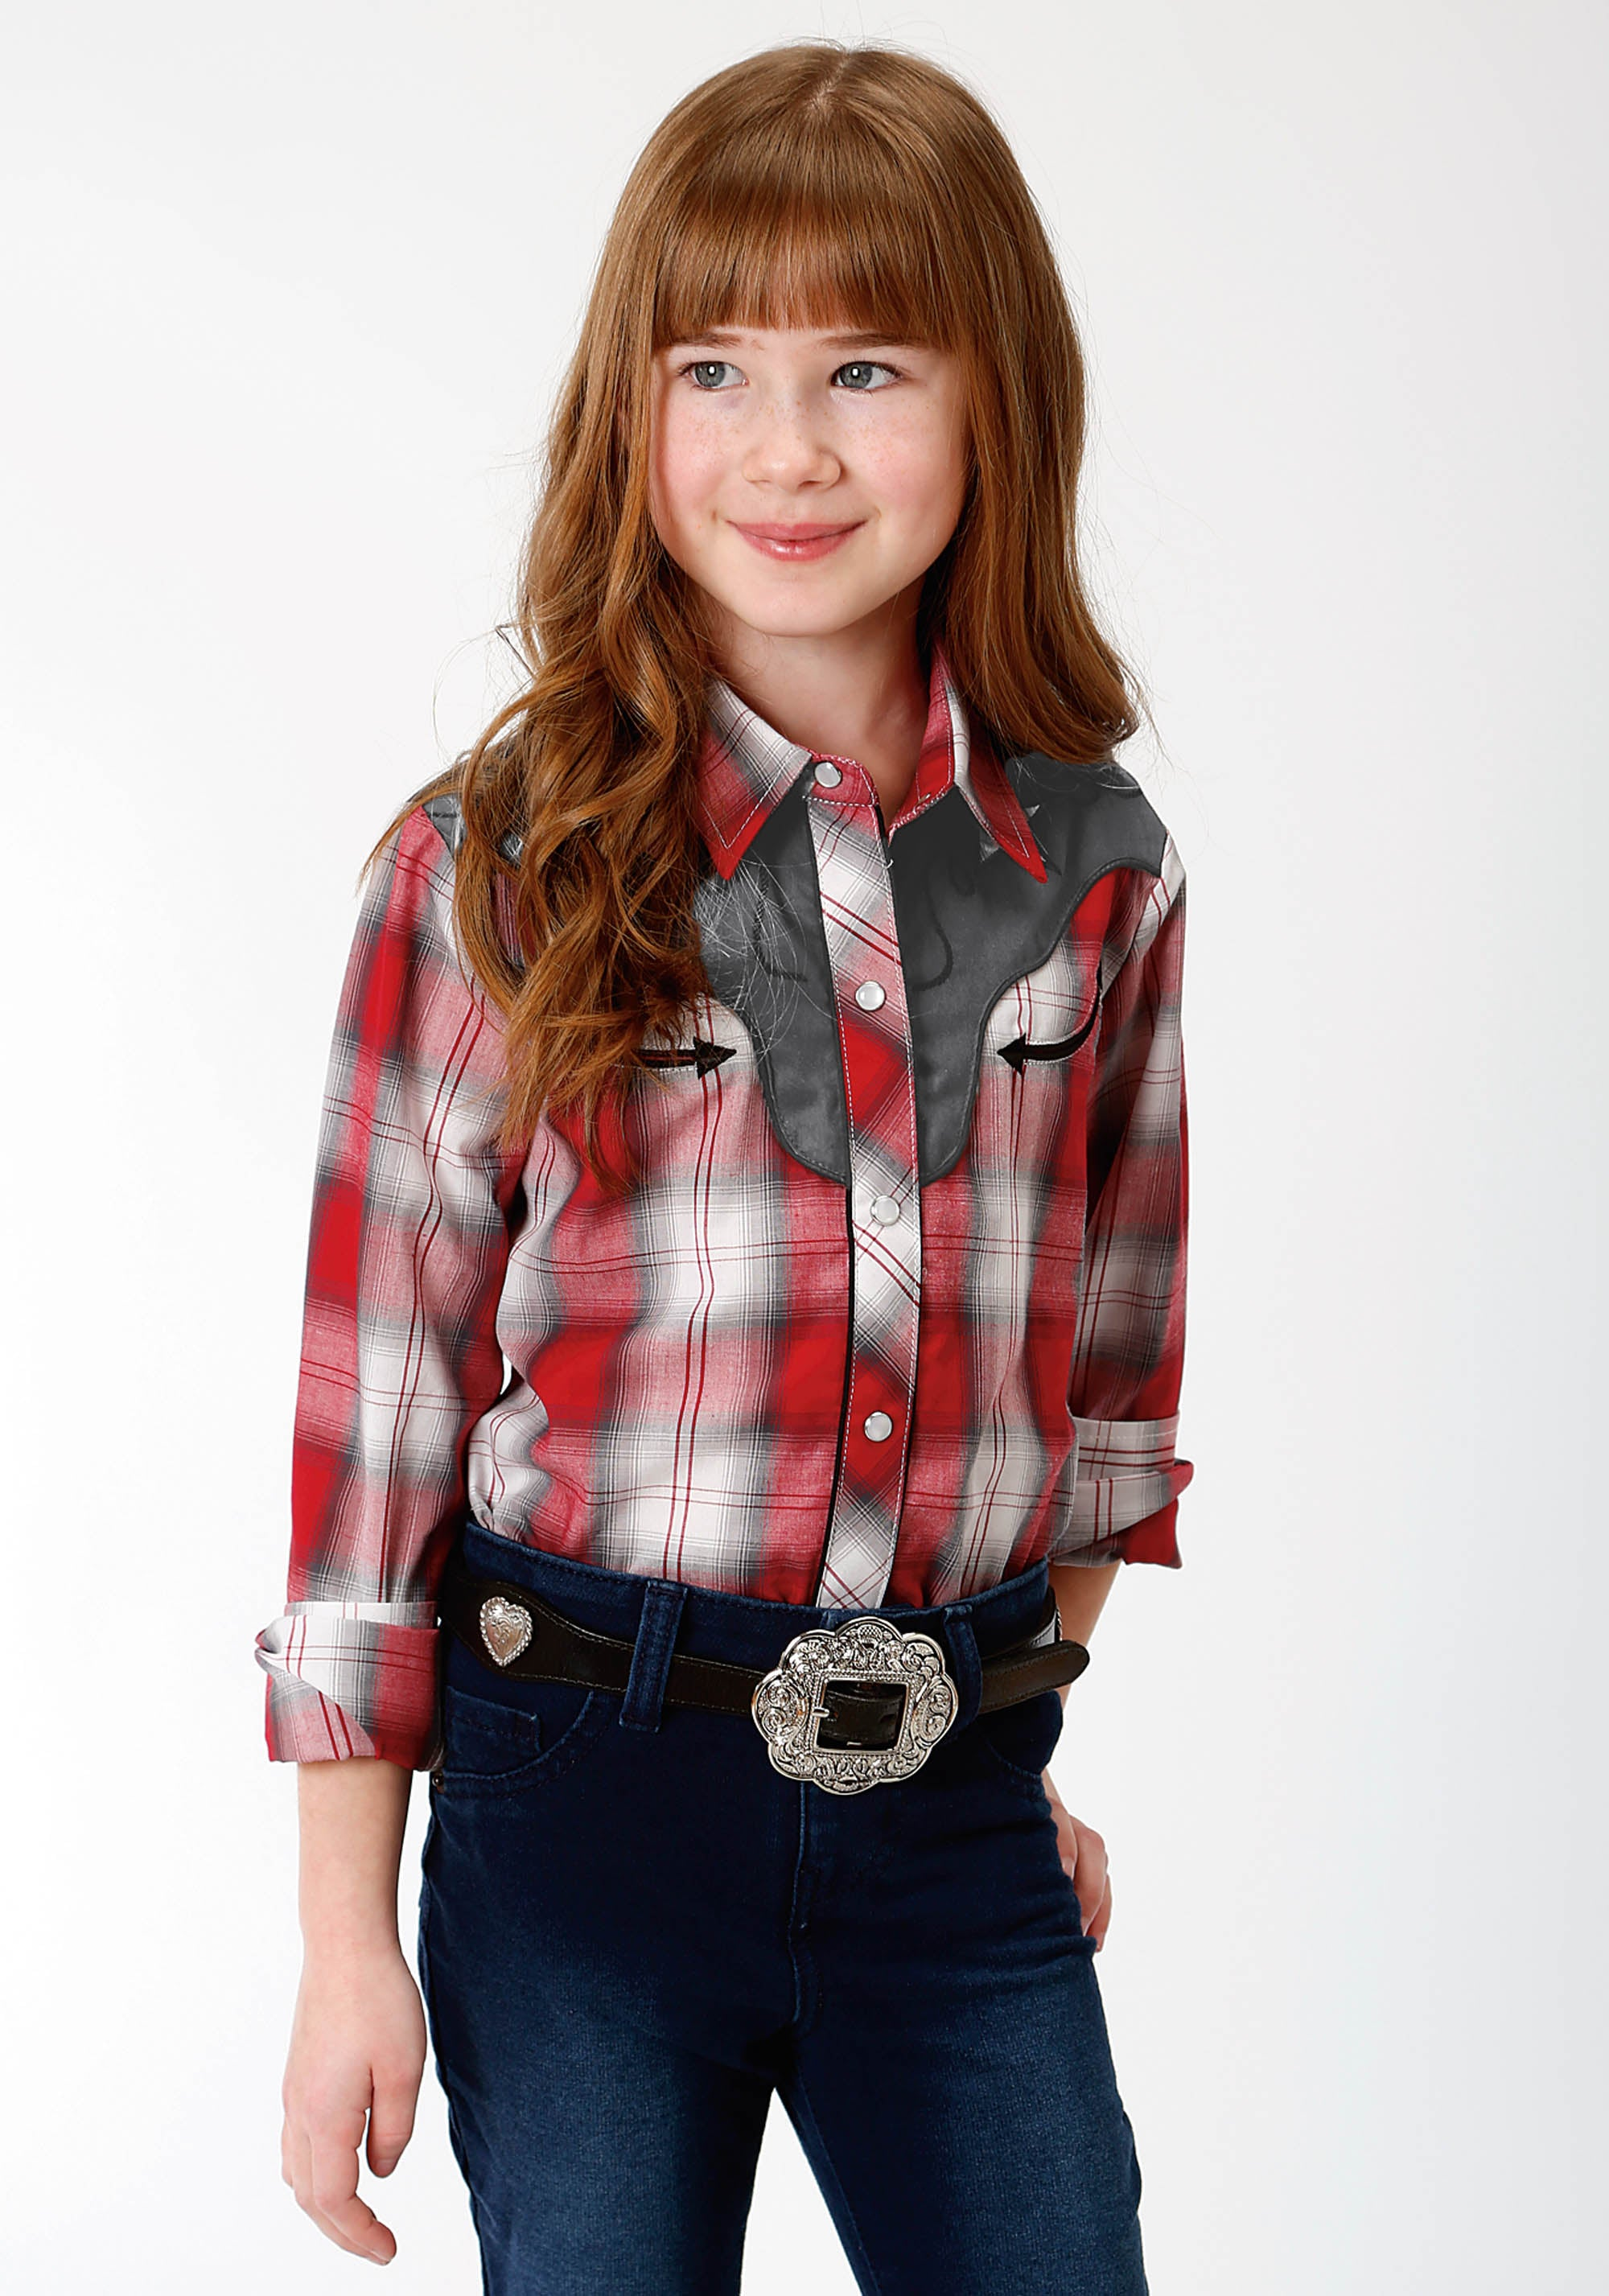 ROPER GIRLS RED 9910 RED, WHITE & GREY PLAID KARMAN SPECIAL STYLES LONG SLEEVE